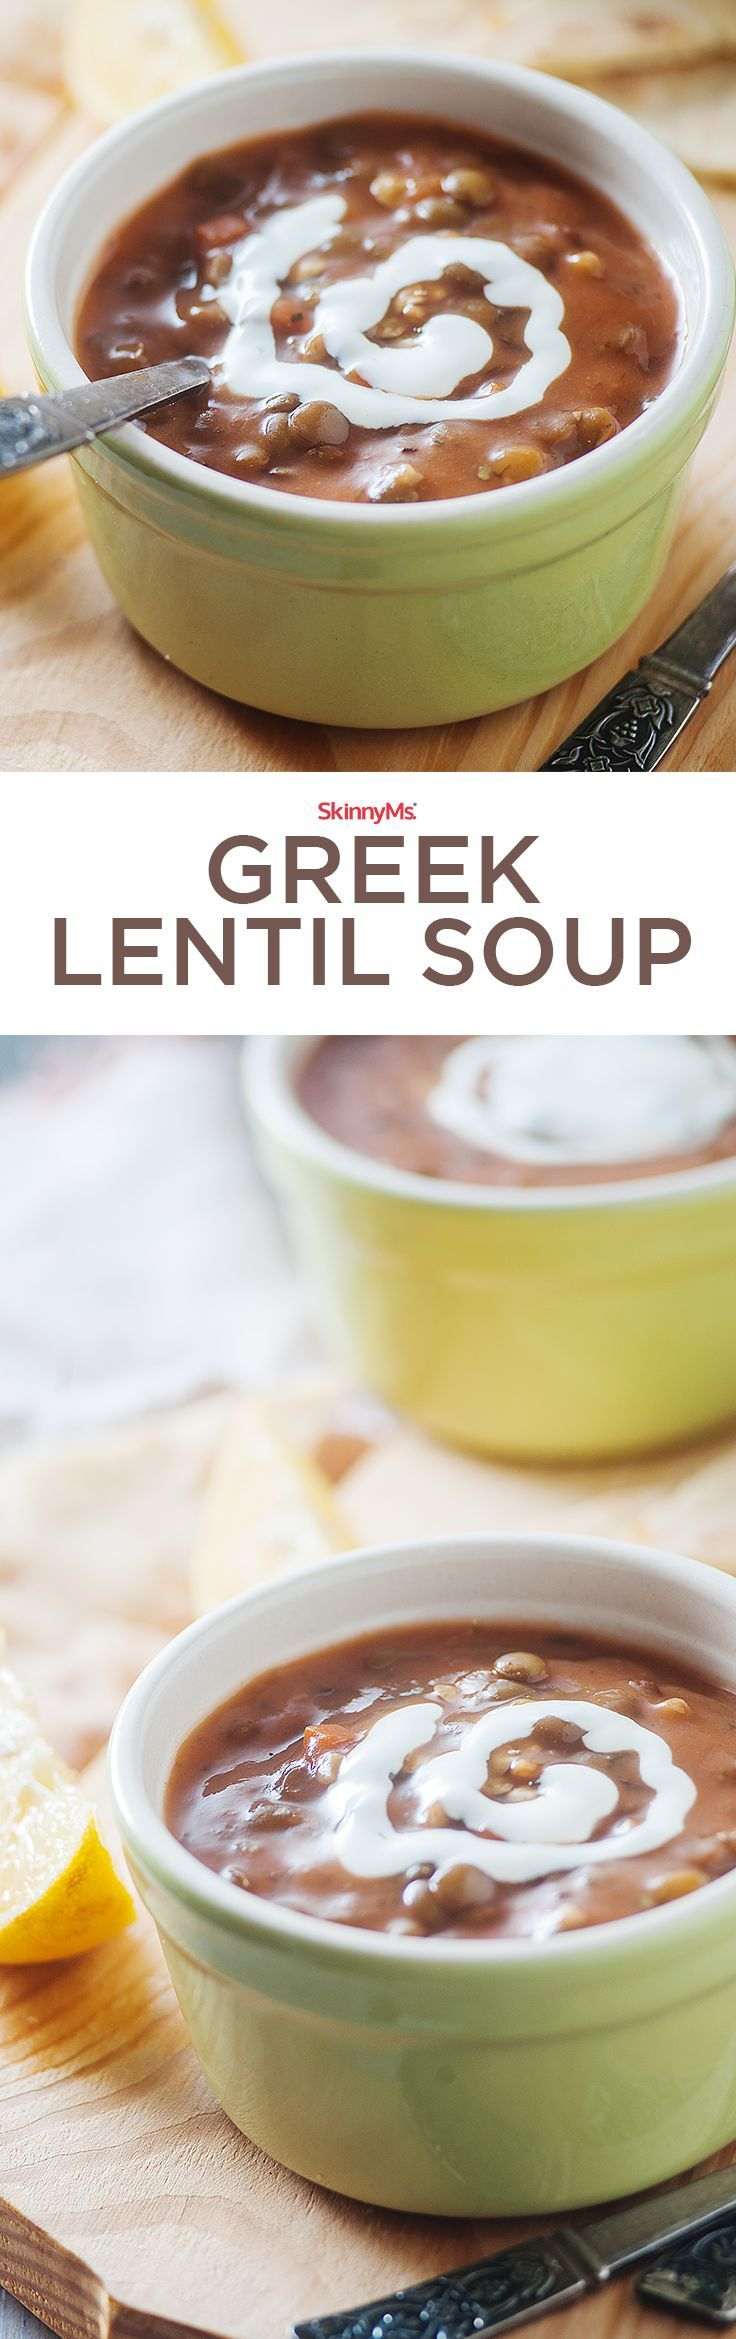 Our Greek Lentil Soup is a tasty and healthy way to incorporate lentils into your diet! Try it tonight! #skinnyms